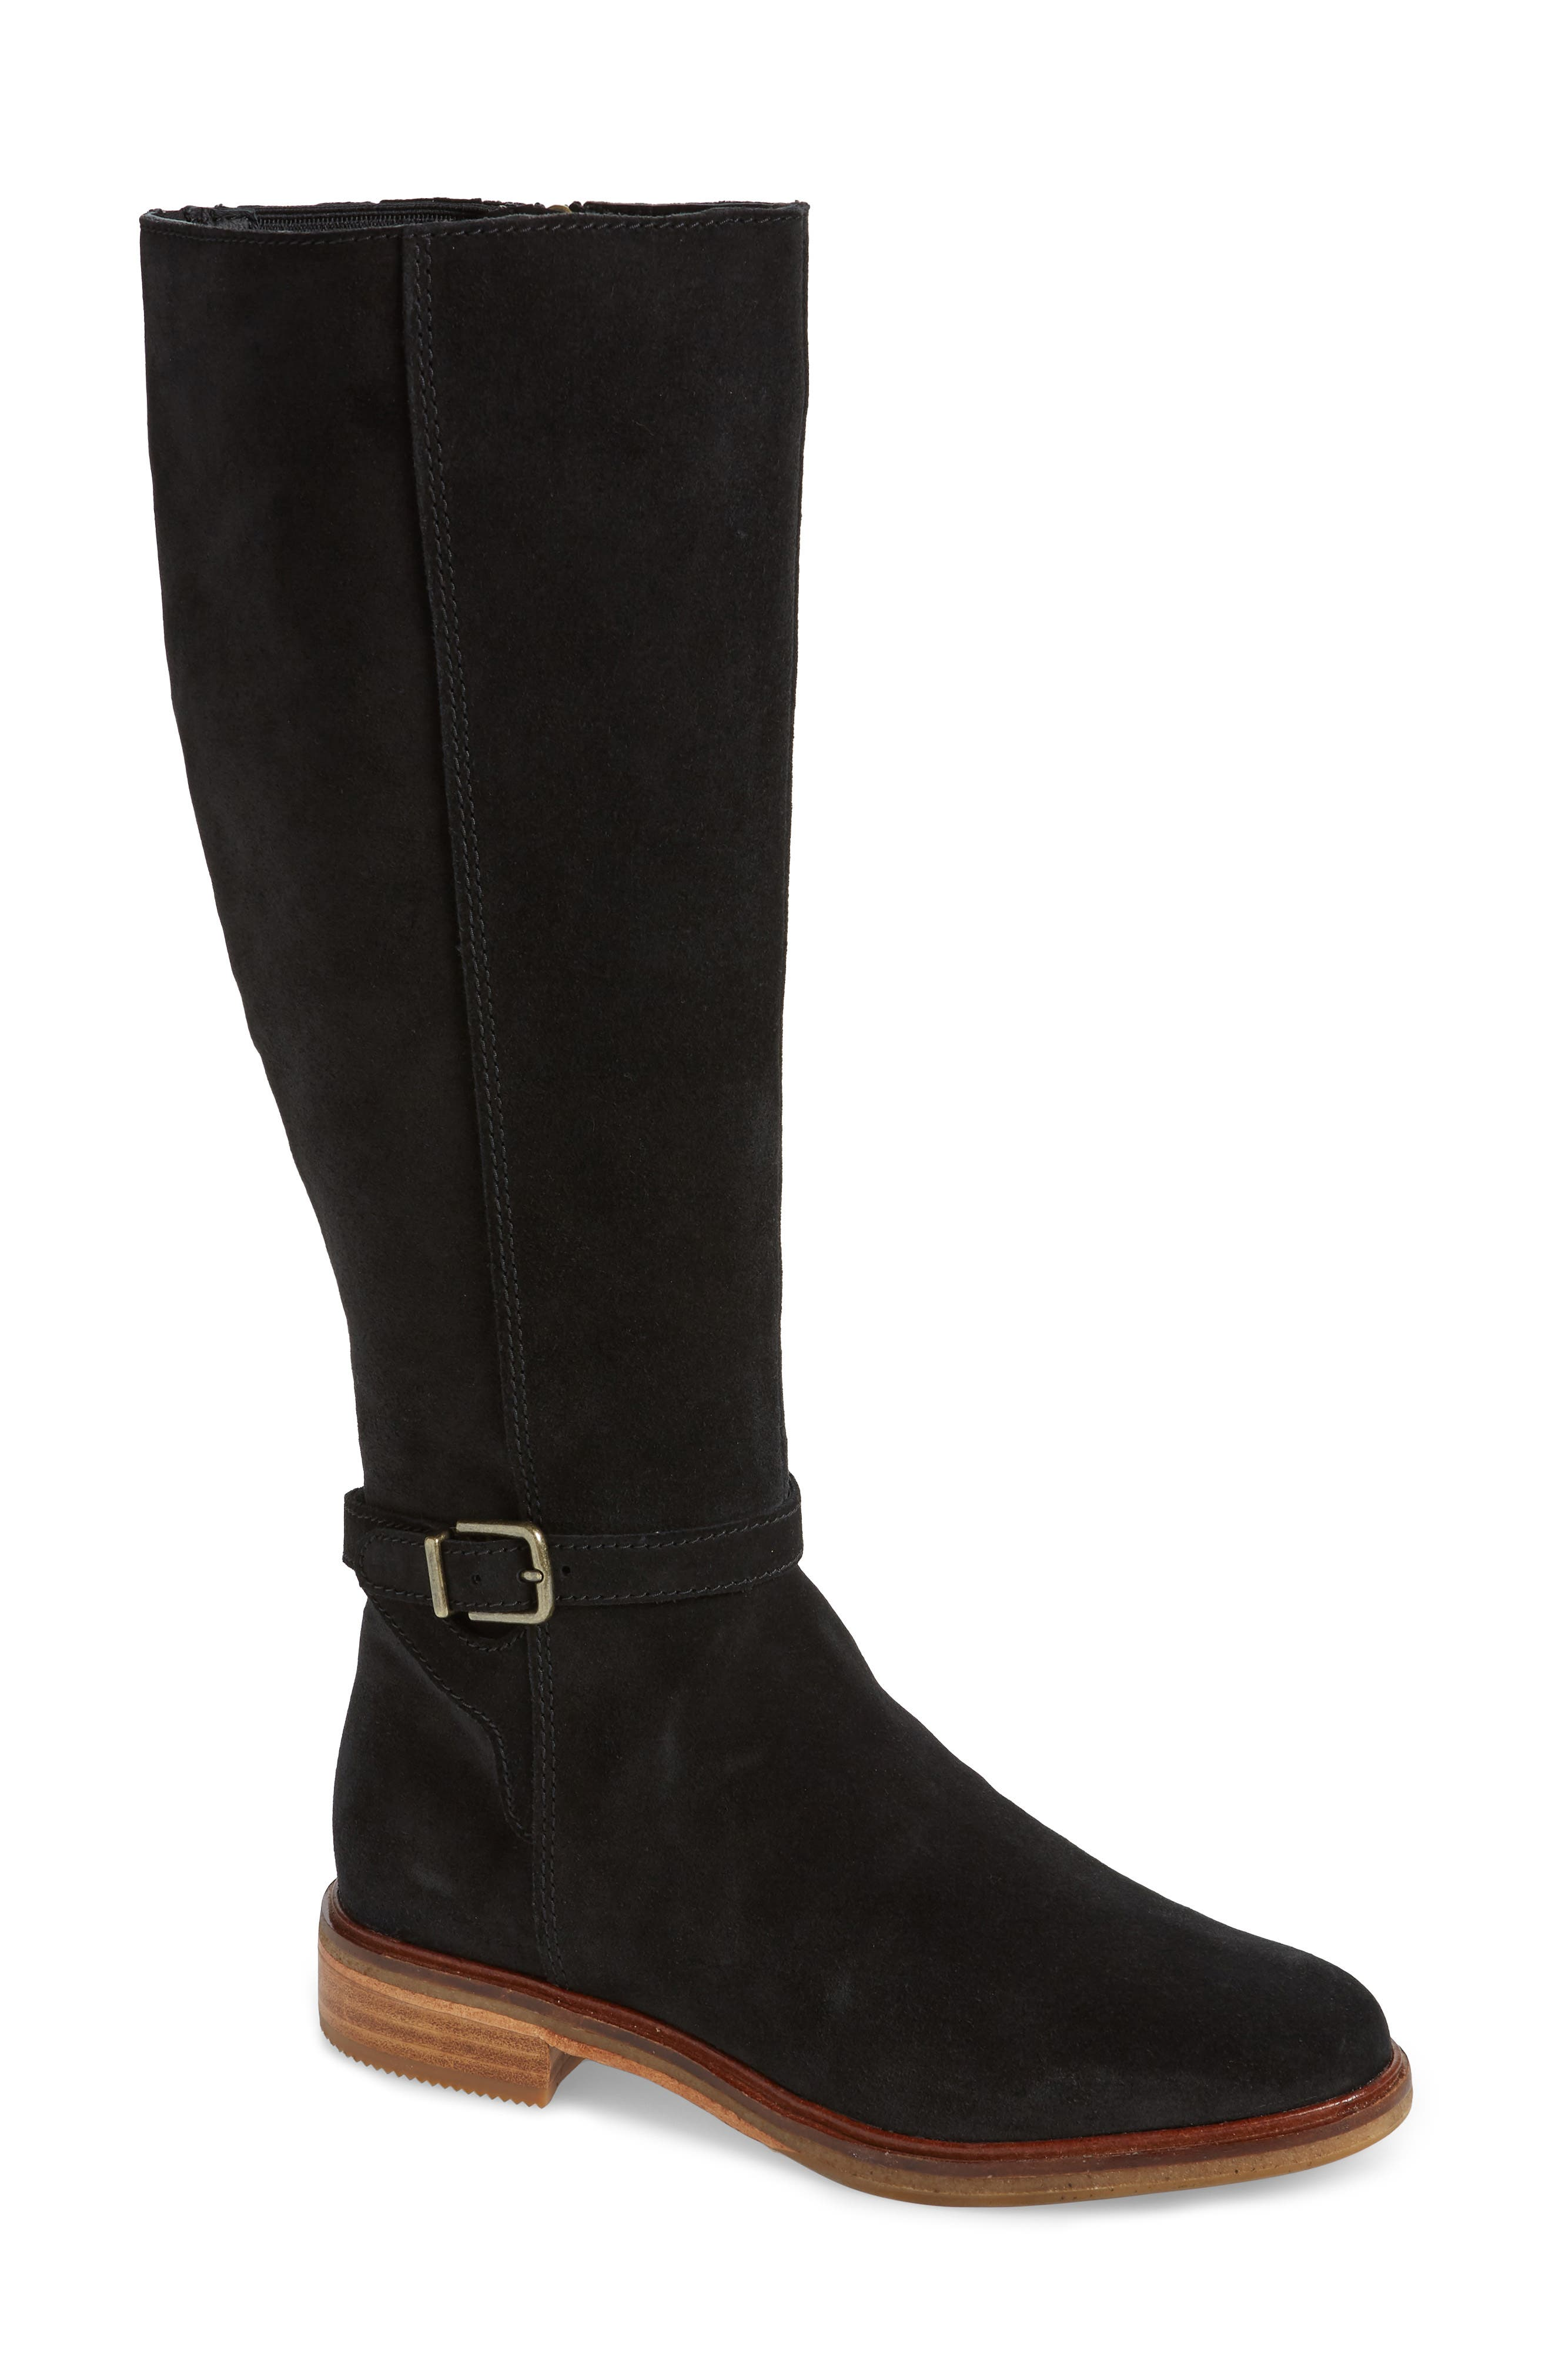 CLARKS<SUP>®</SUP> Clarkdale Clad Boot, Main, color, BLACK SUEDE